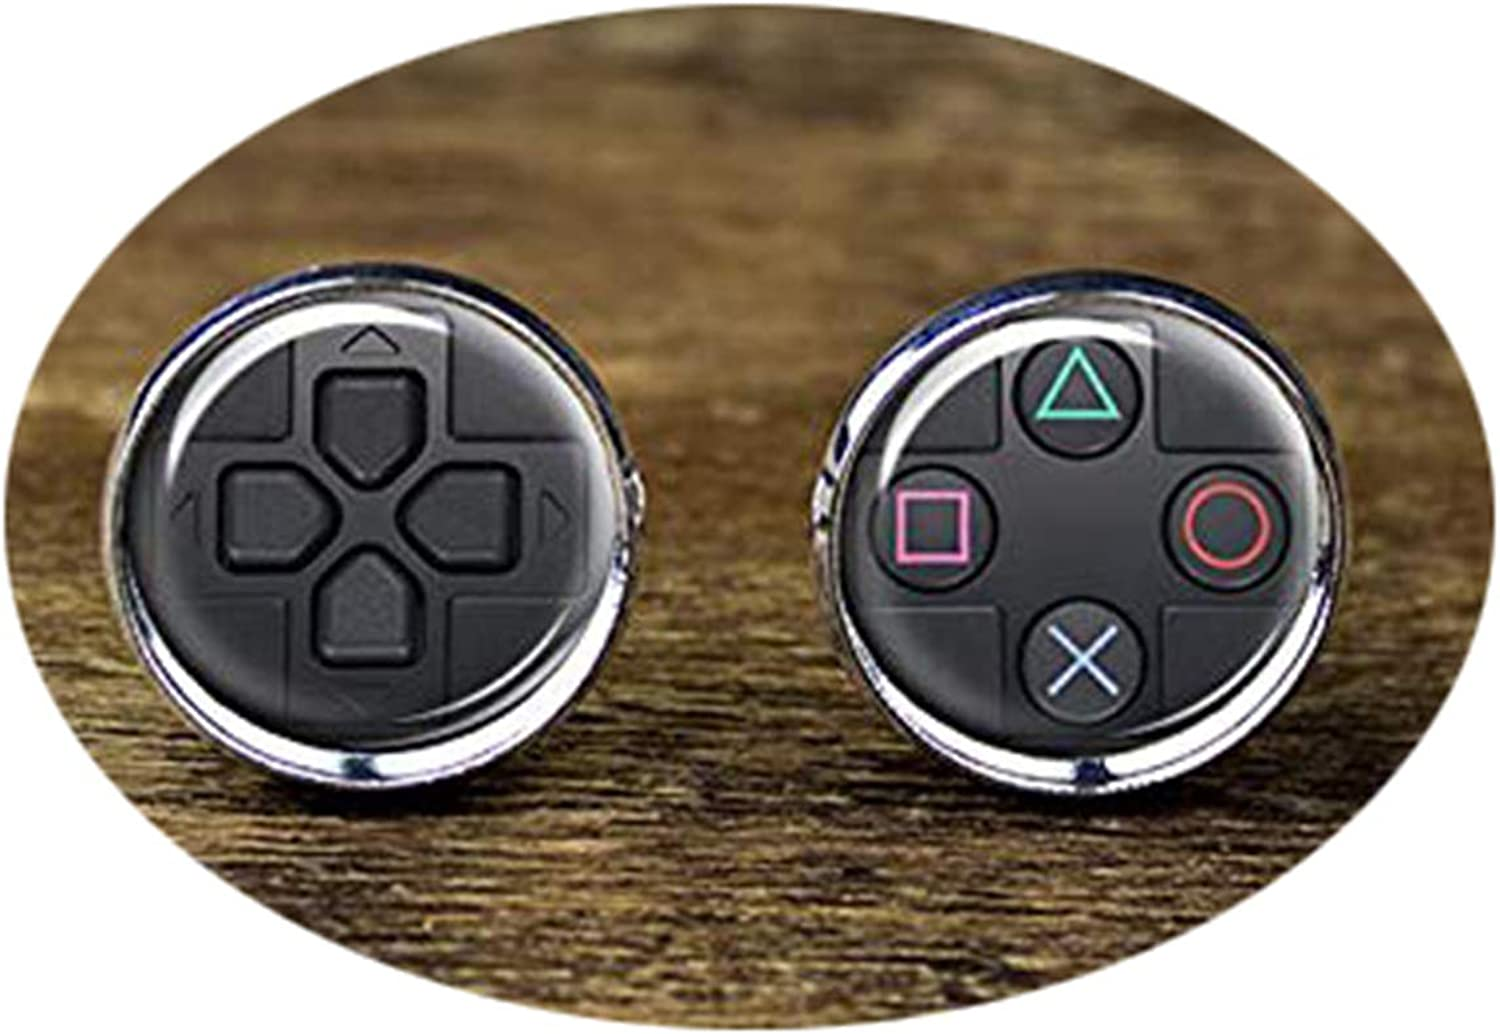 Death Devil Handmade Cuff Links,Video Game Controller Cufflinks, Game Controller Cufflinks, Video Game Accessories,Gift of Love